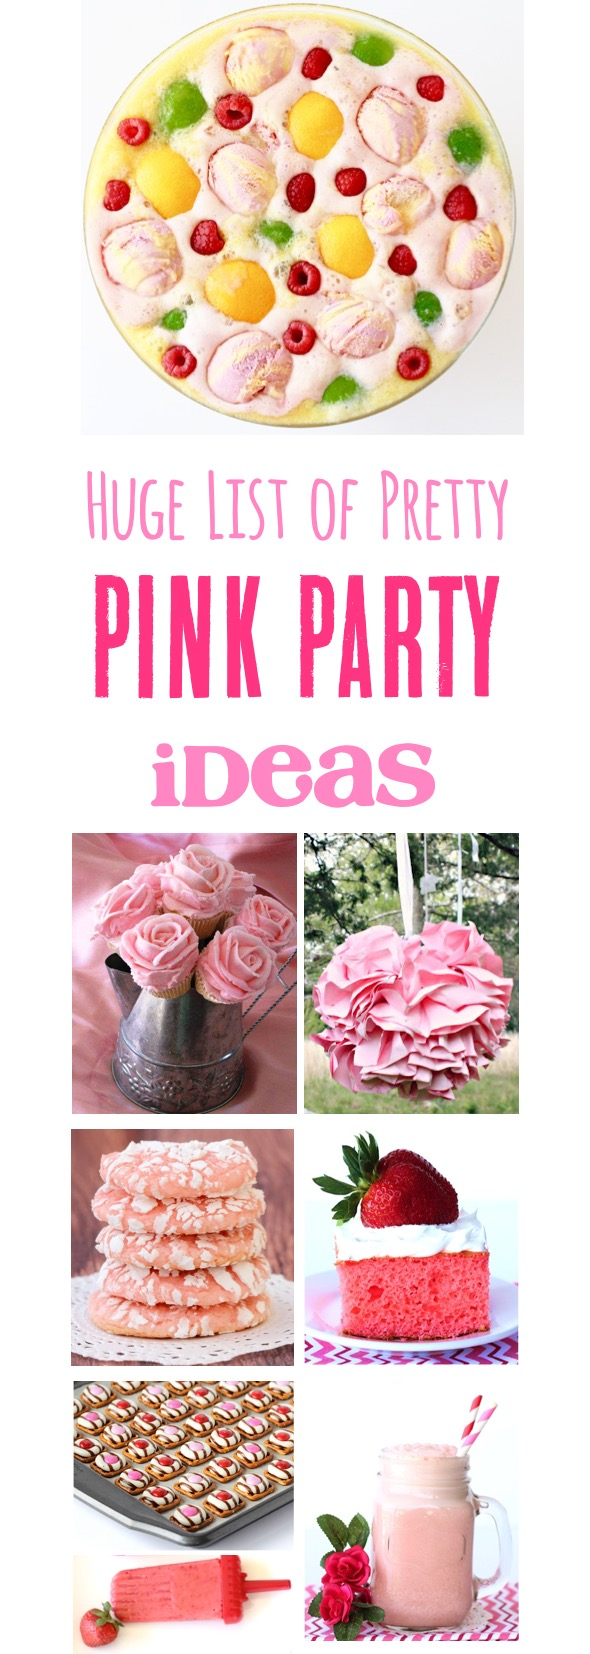 Pink Party Ideas - at TheFrugalGirls.com